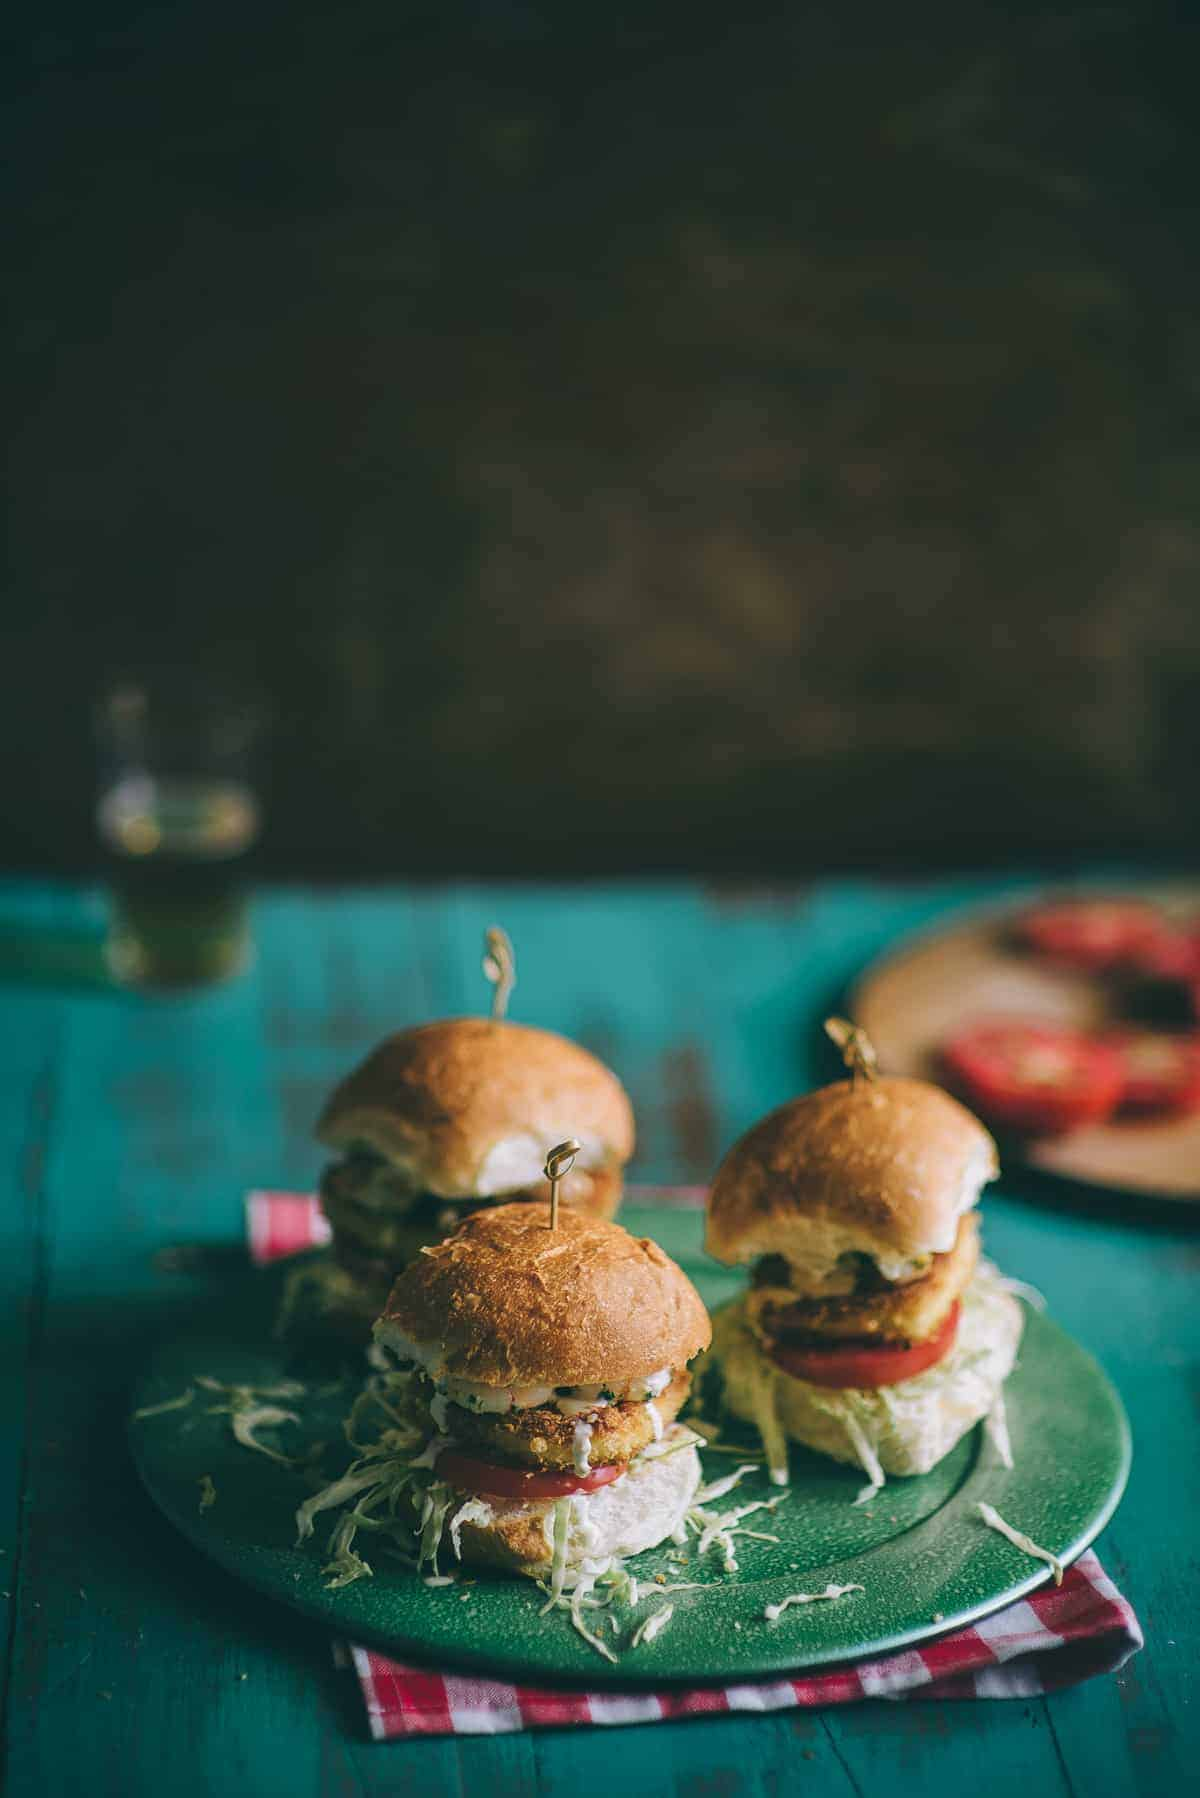 three burgers on a green plate on a rustic green table